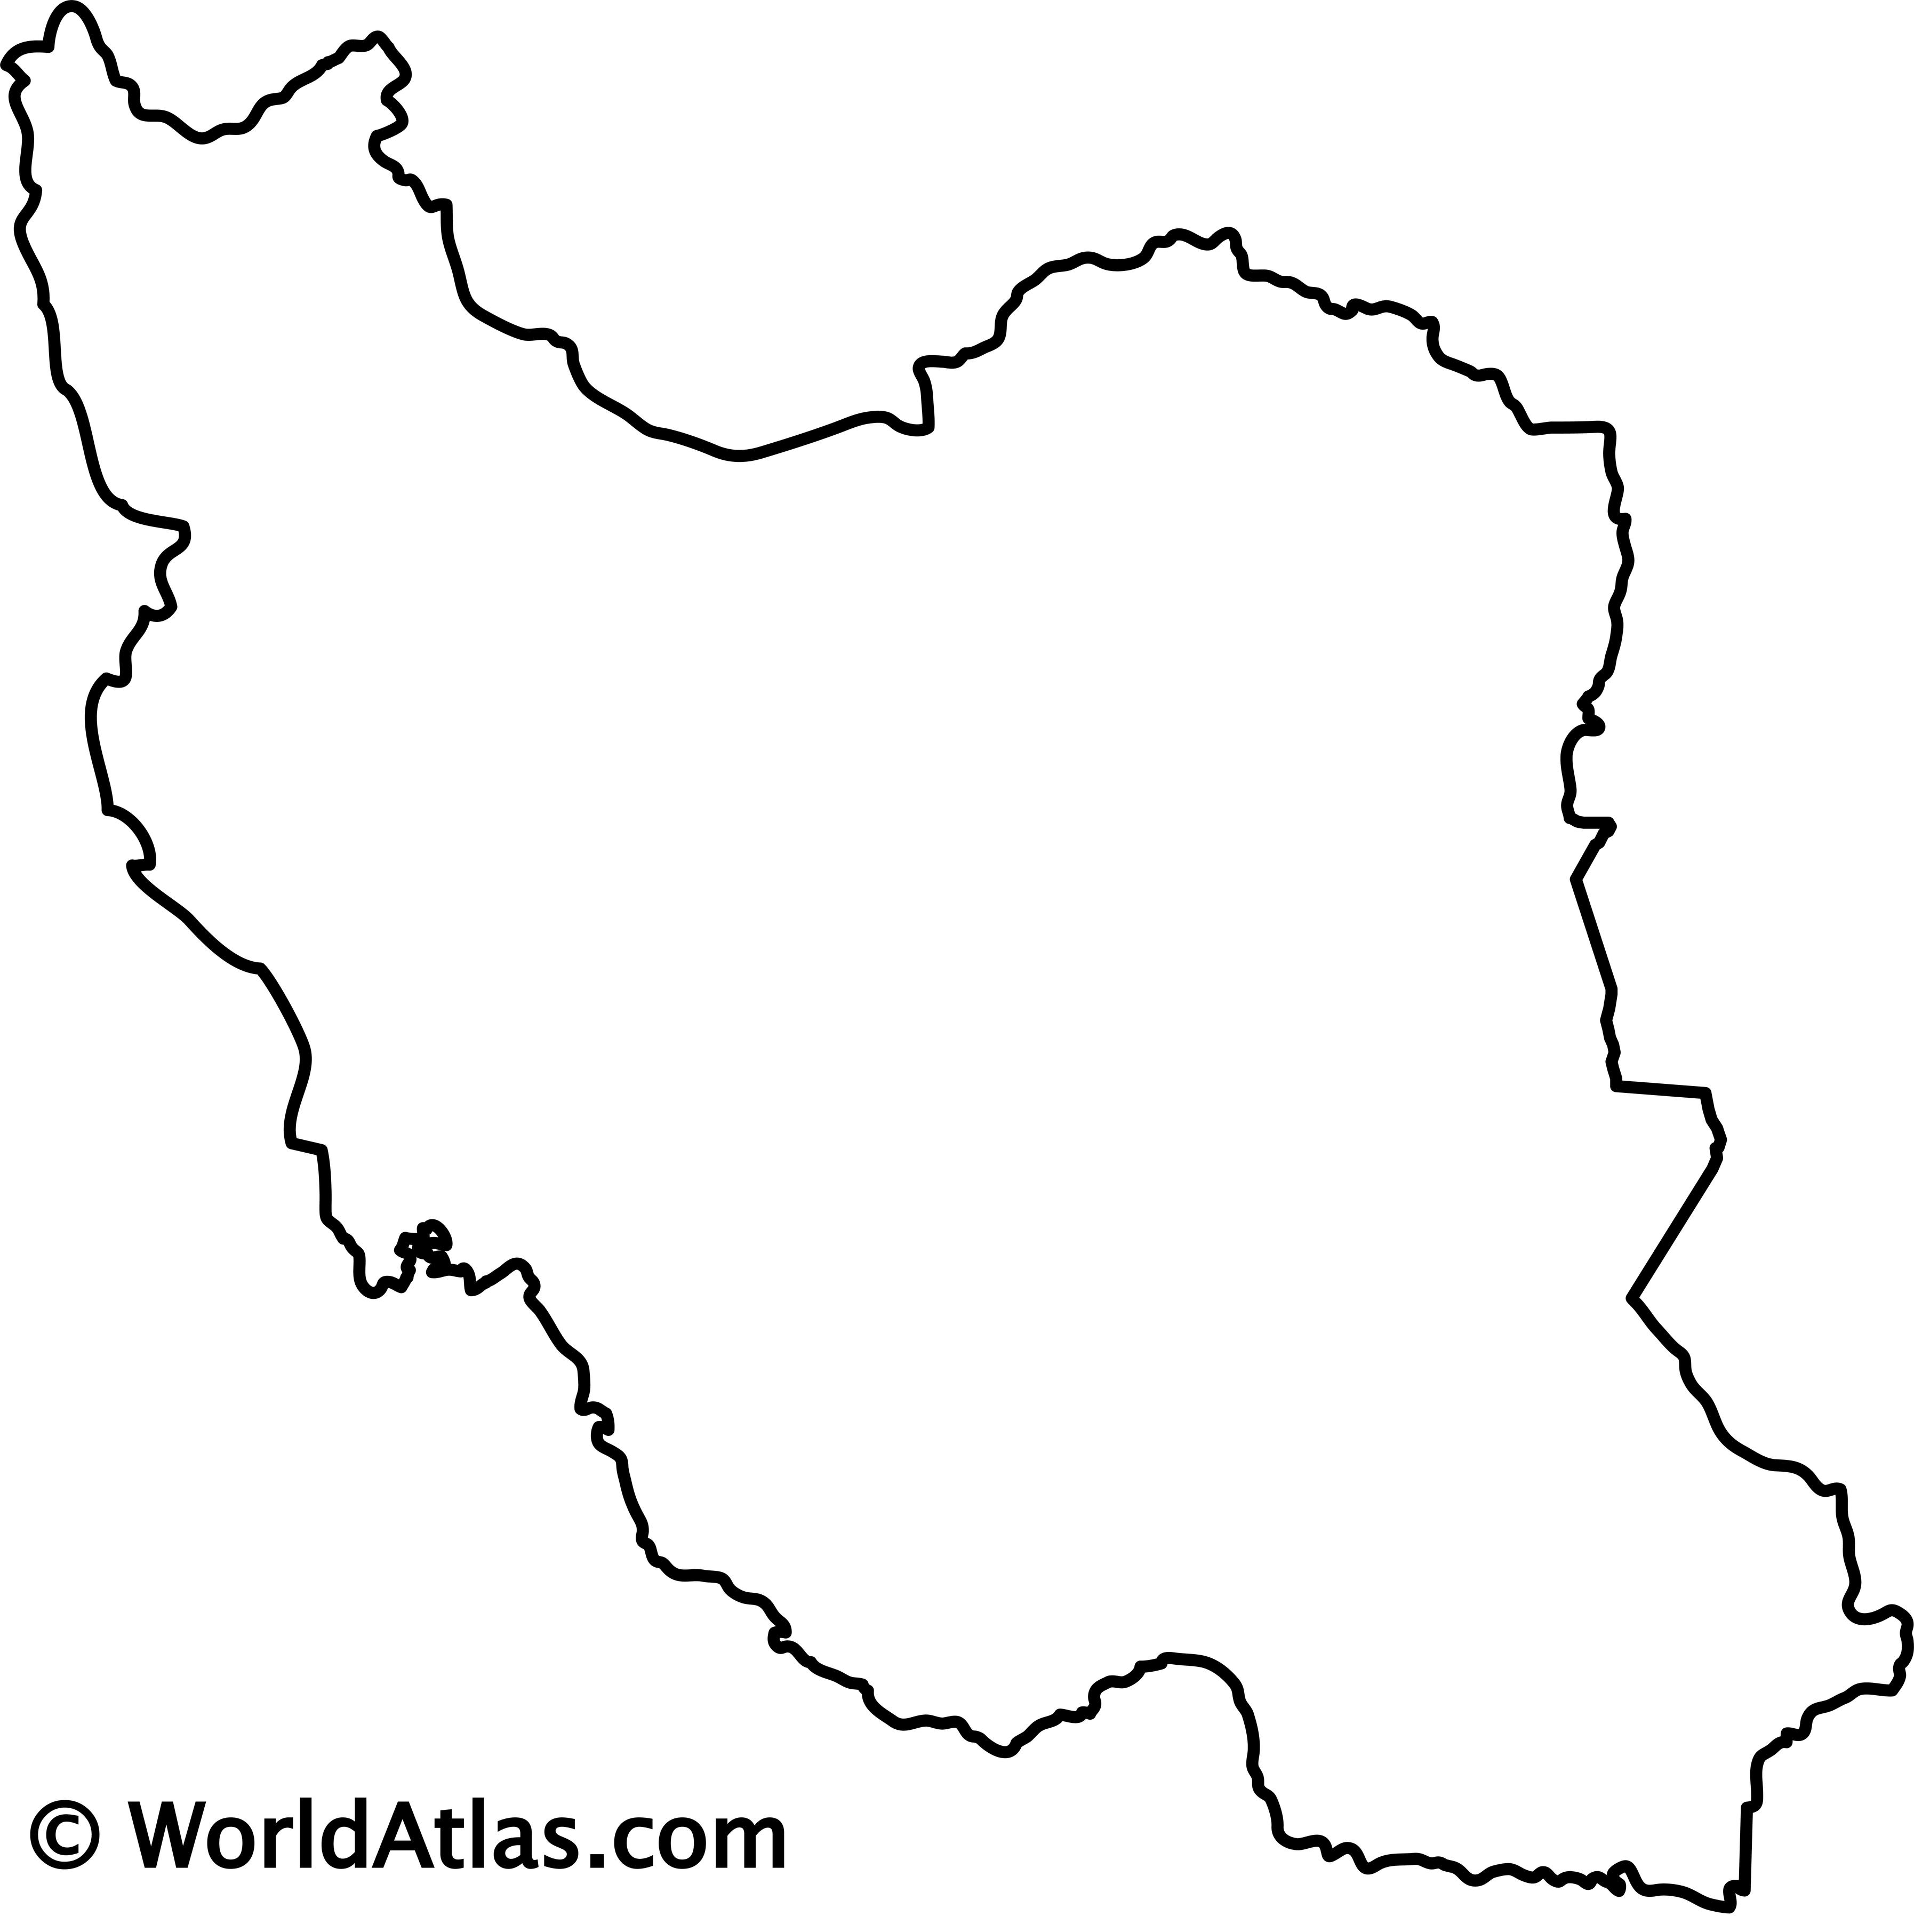 Blank Outline Map of Iran